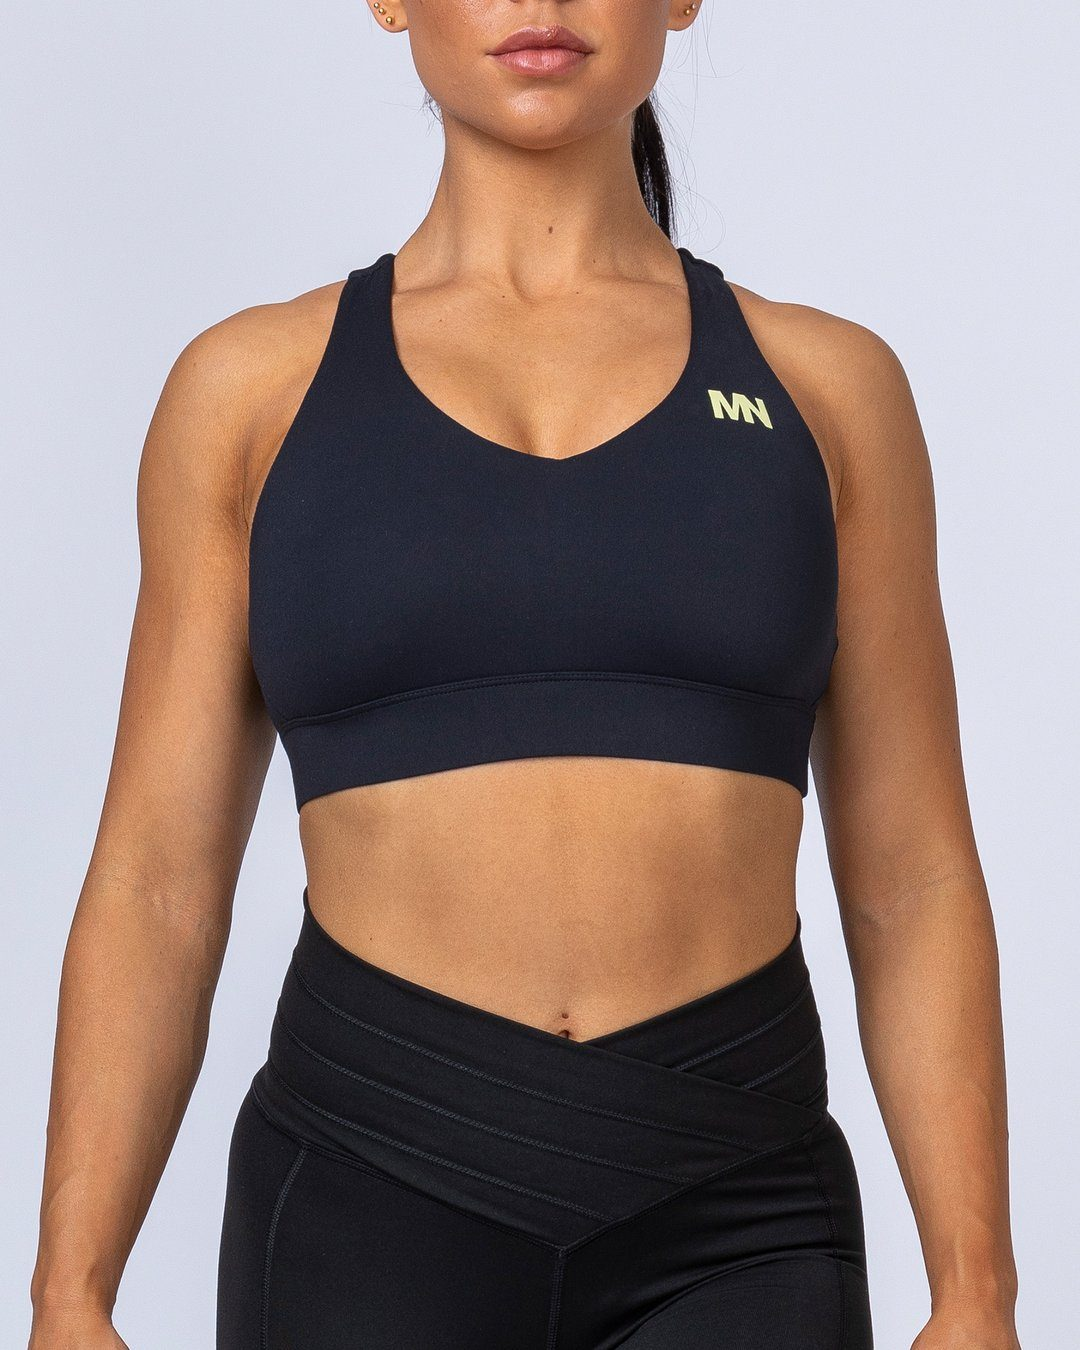 Muscle Nation Comfort Bra - Black